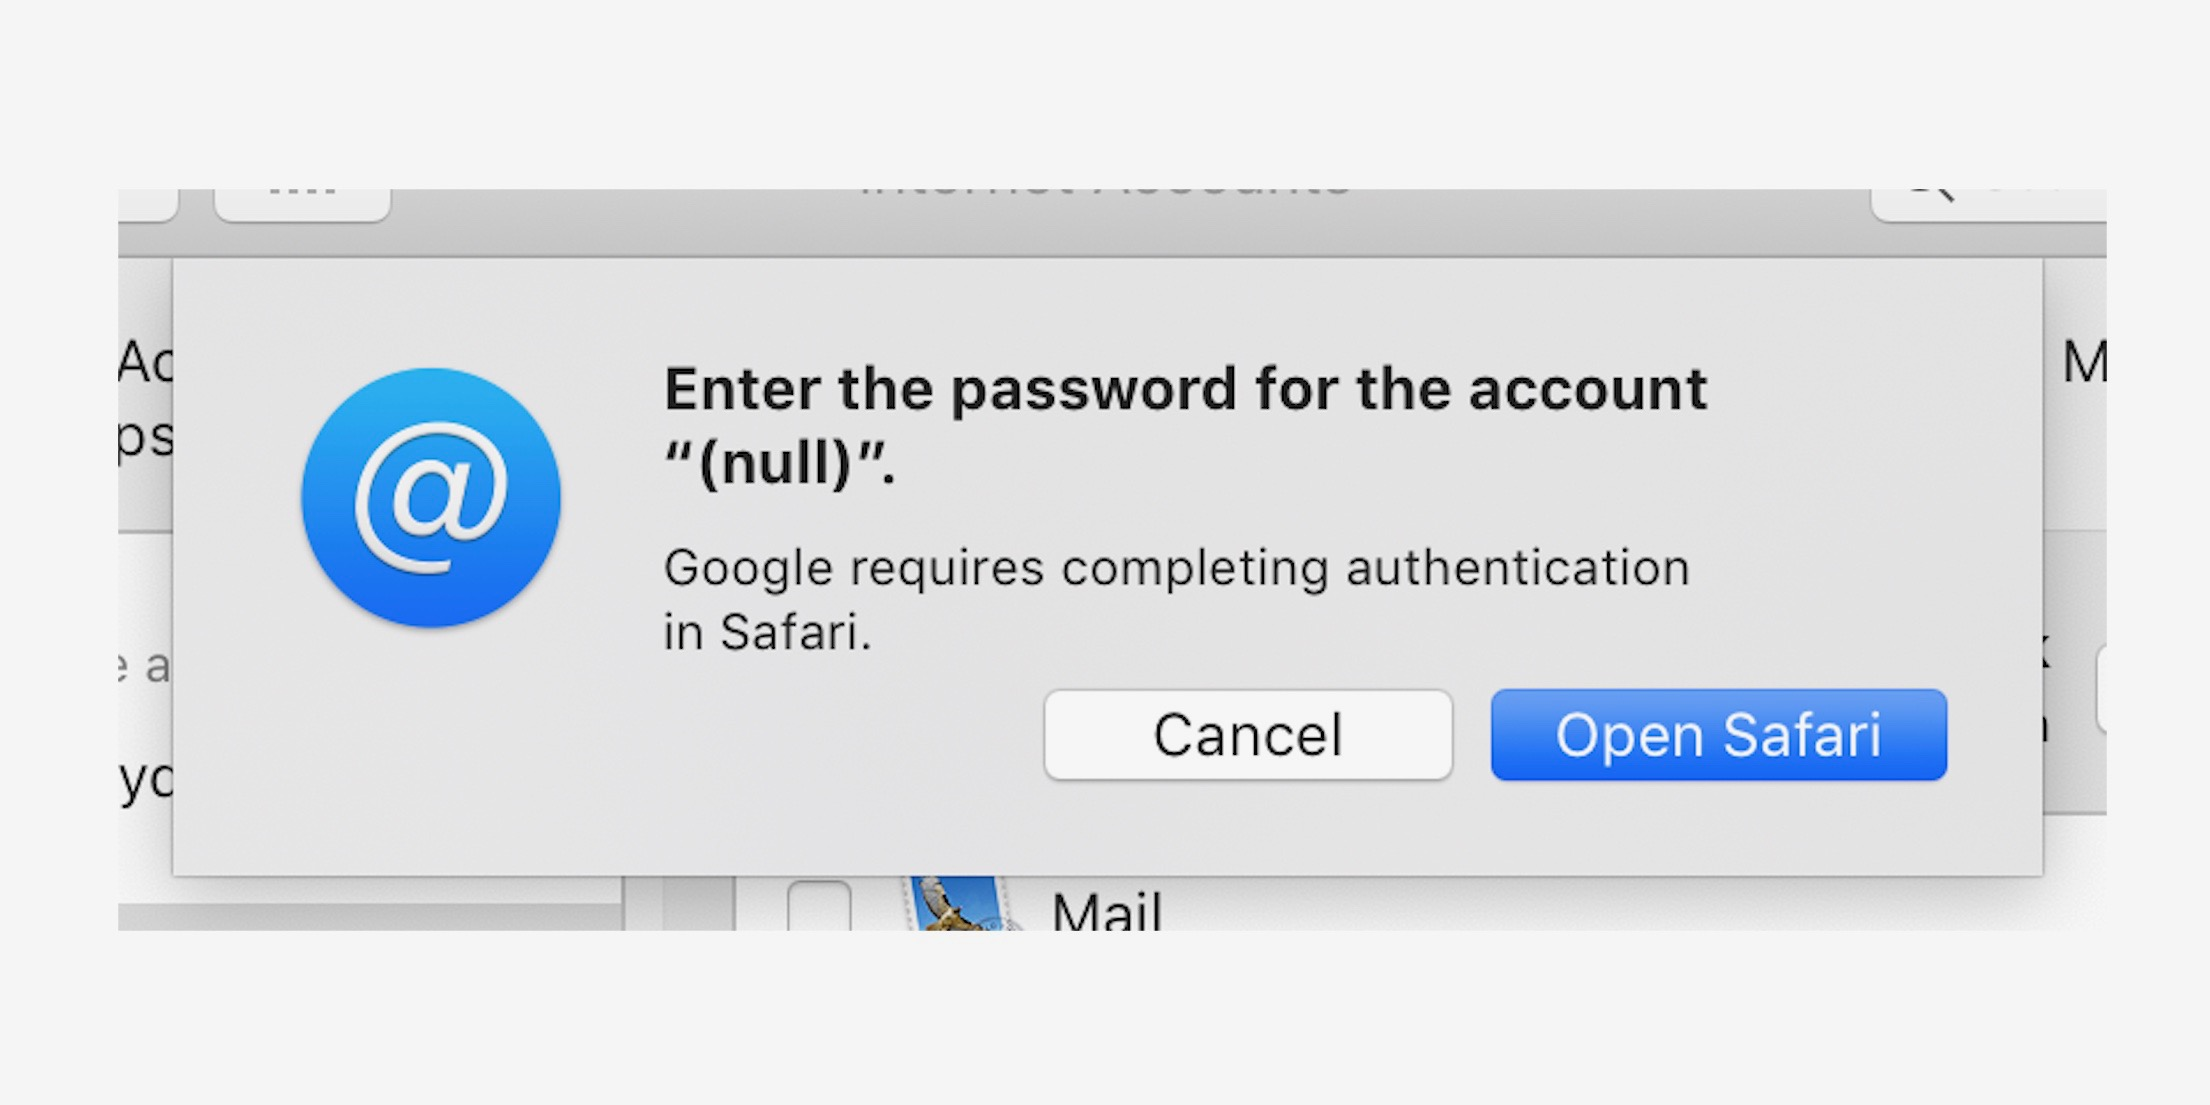 Gmail macOS 10 14 4 sign-in issues affecting many users